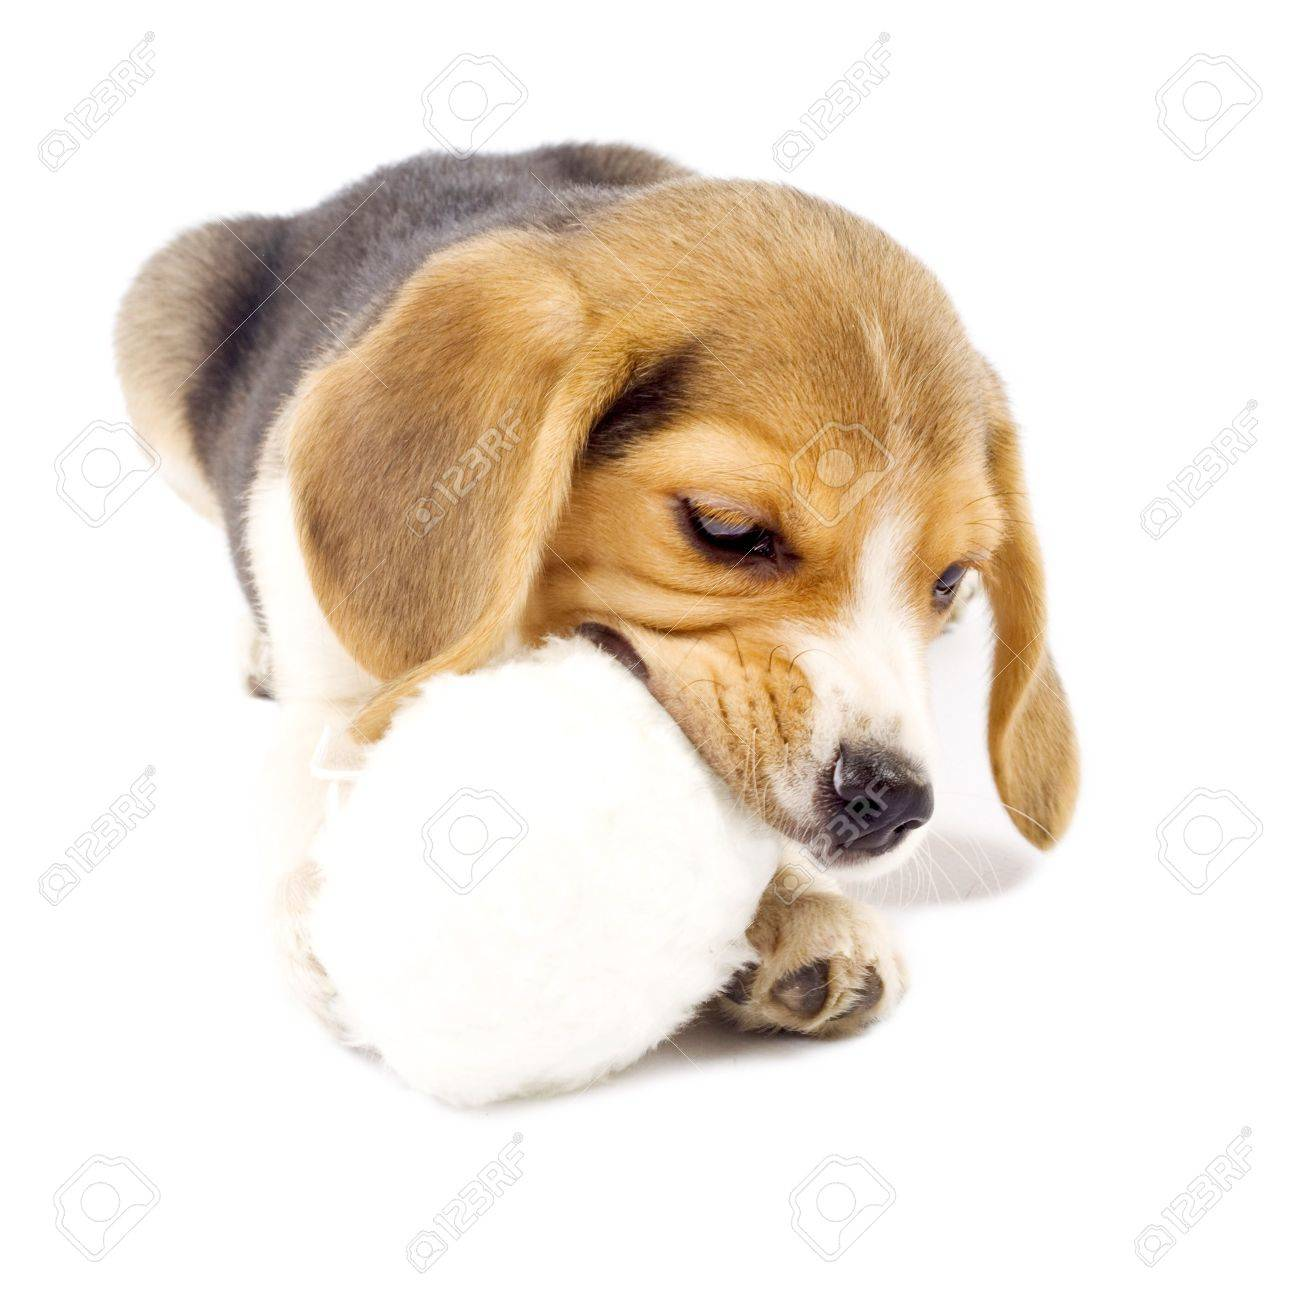 Must see Toy Beagle Adorable Dog - 6204697-adorable-young-beagle-pup-chewing-on-it-s-fur-ball-toy  Pic_607450  .jpg